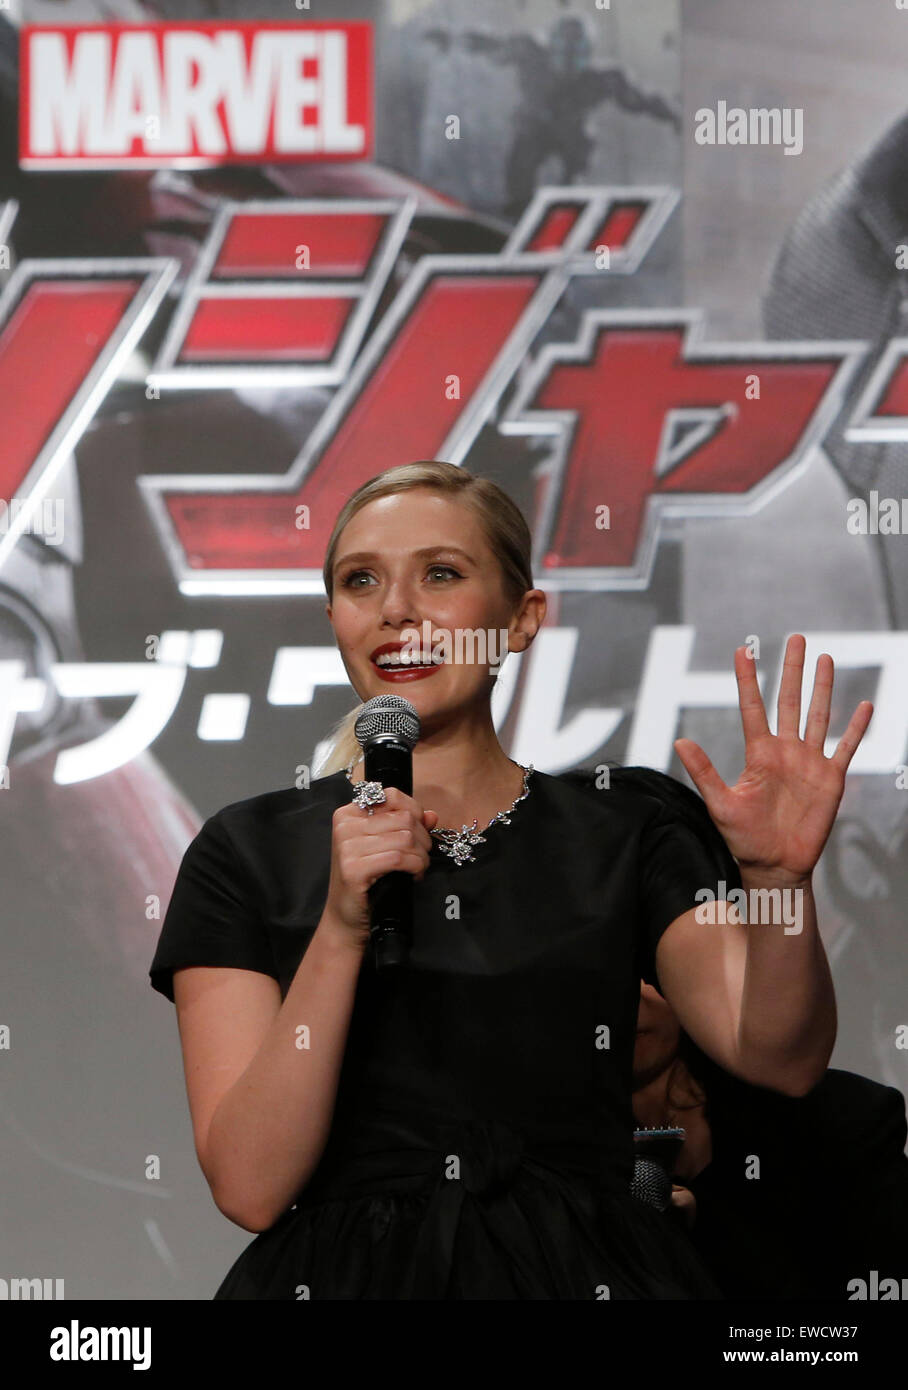 Tokyo, Japan. 23rd June, 2015. American actress Elizabeth Olsen speaks during a premiere event for her new film Stock Photo